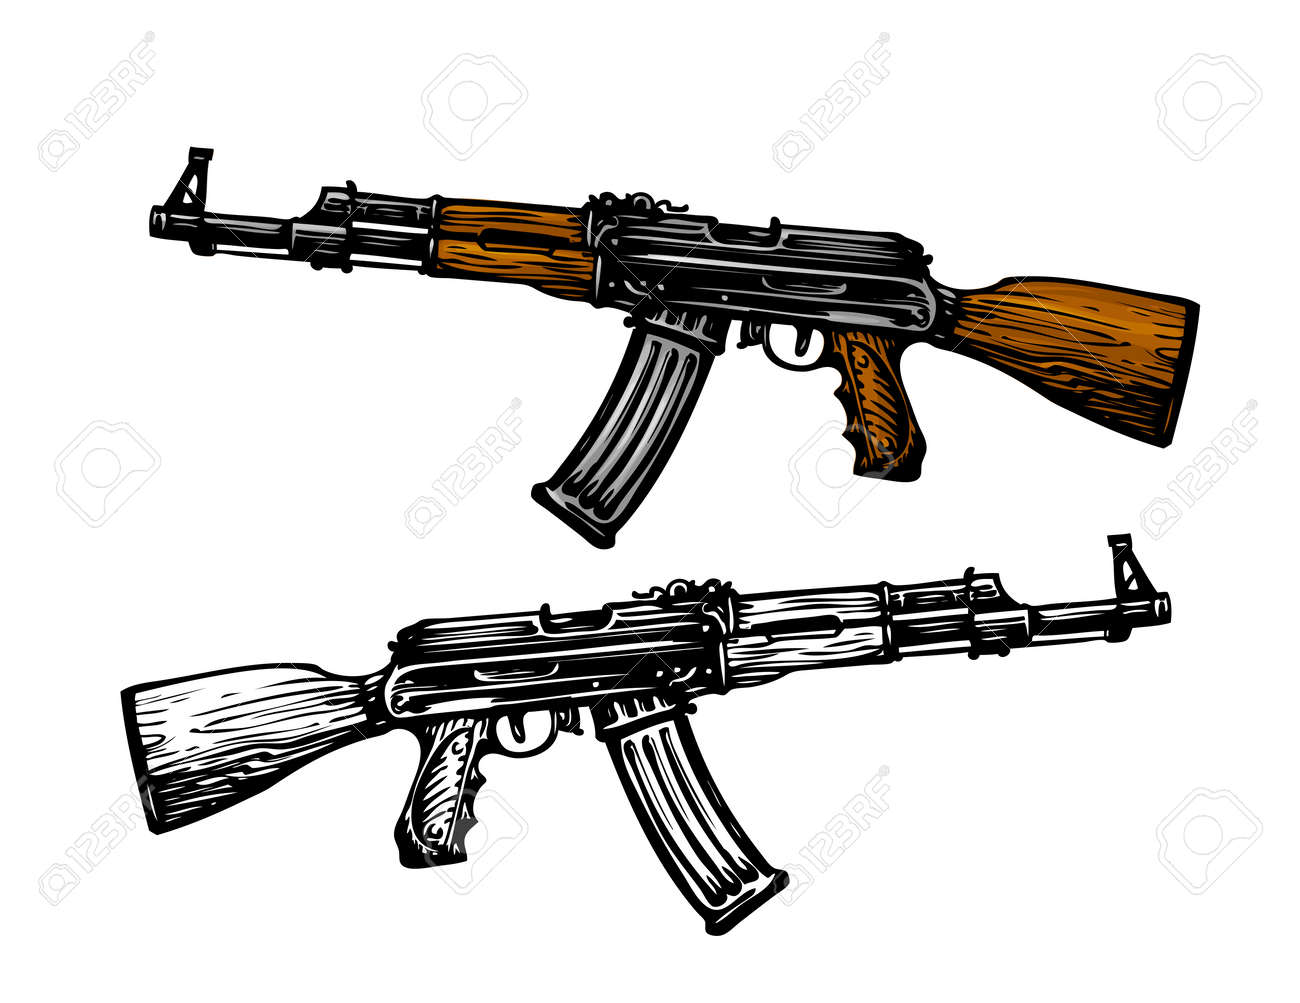 Automatic Machine AK 47 Kalashnikov Assault Rifle Sketch Vector Illustration